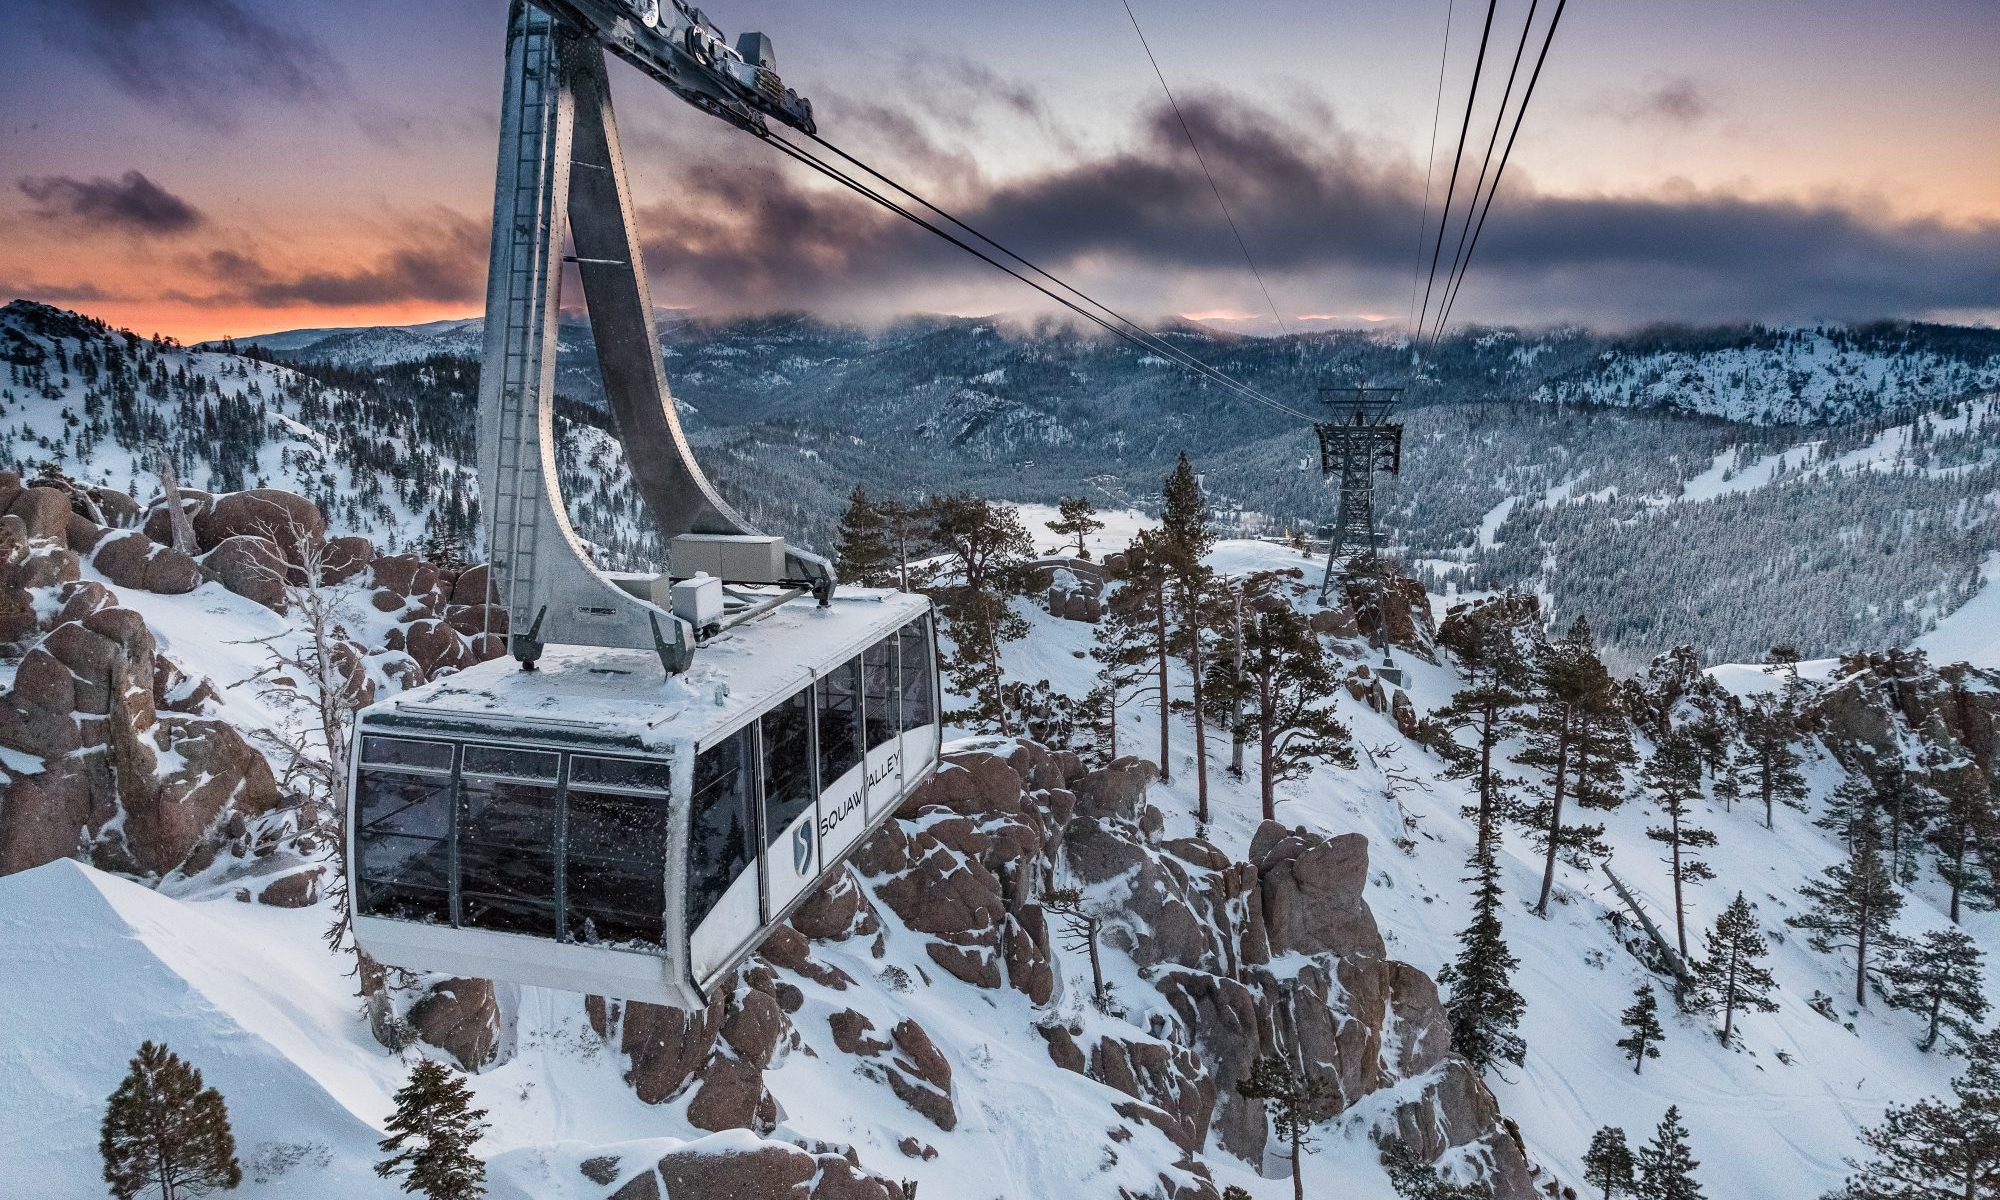 Squaw Valley Funicular - Alterra Mountain Resorts. Skier Visits Top 59 Million in US Ski Areas for the 2018/19 Ski Season.